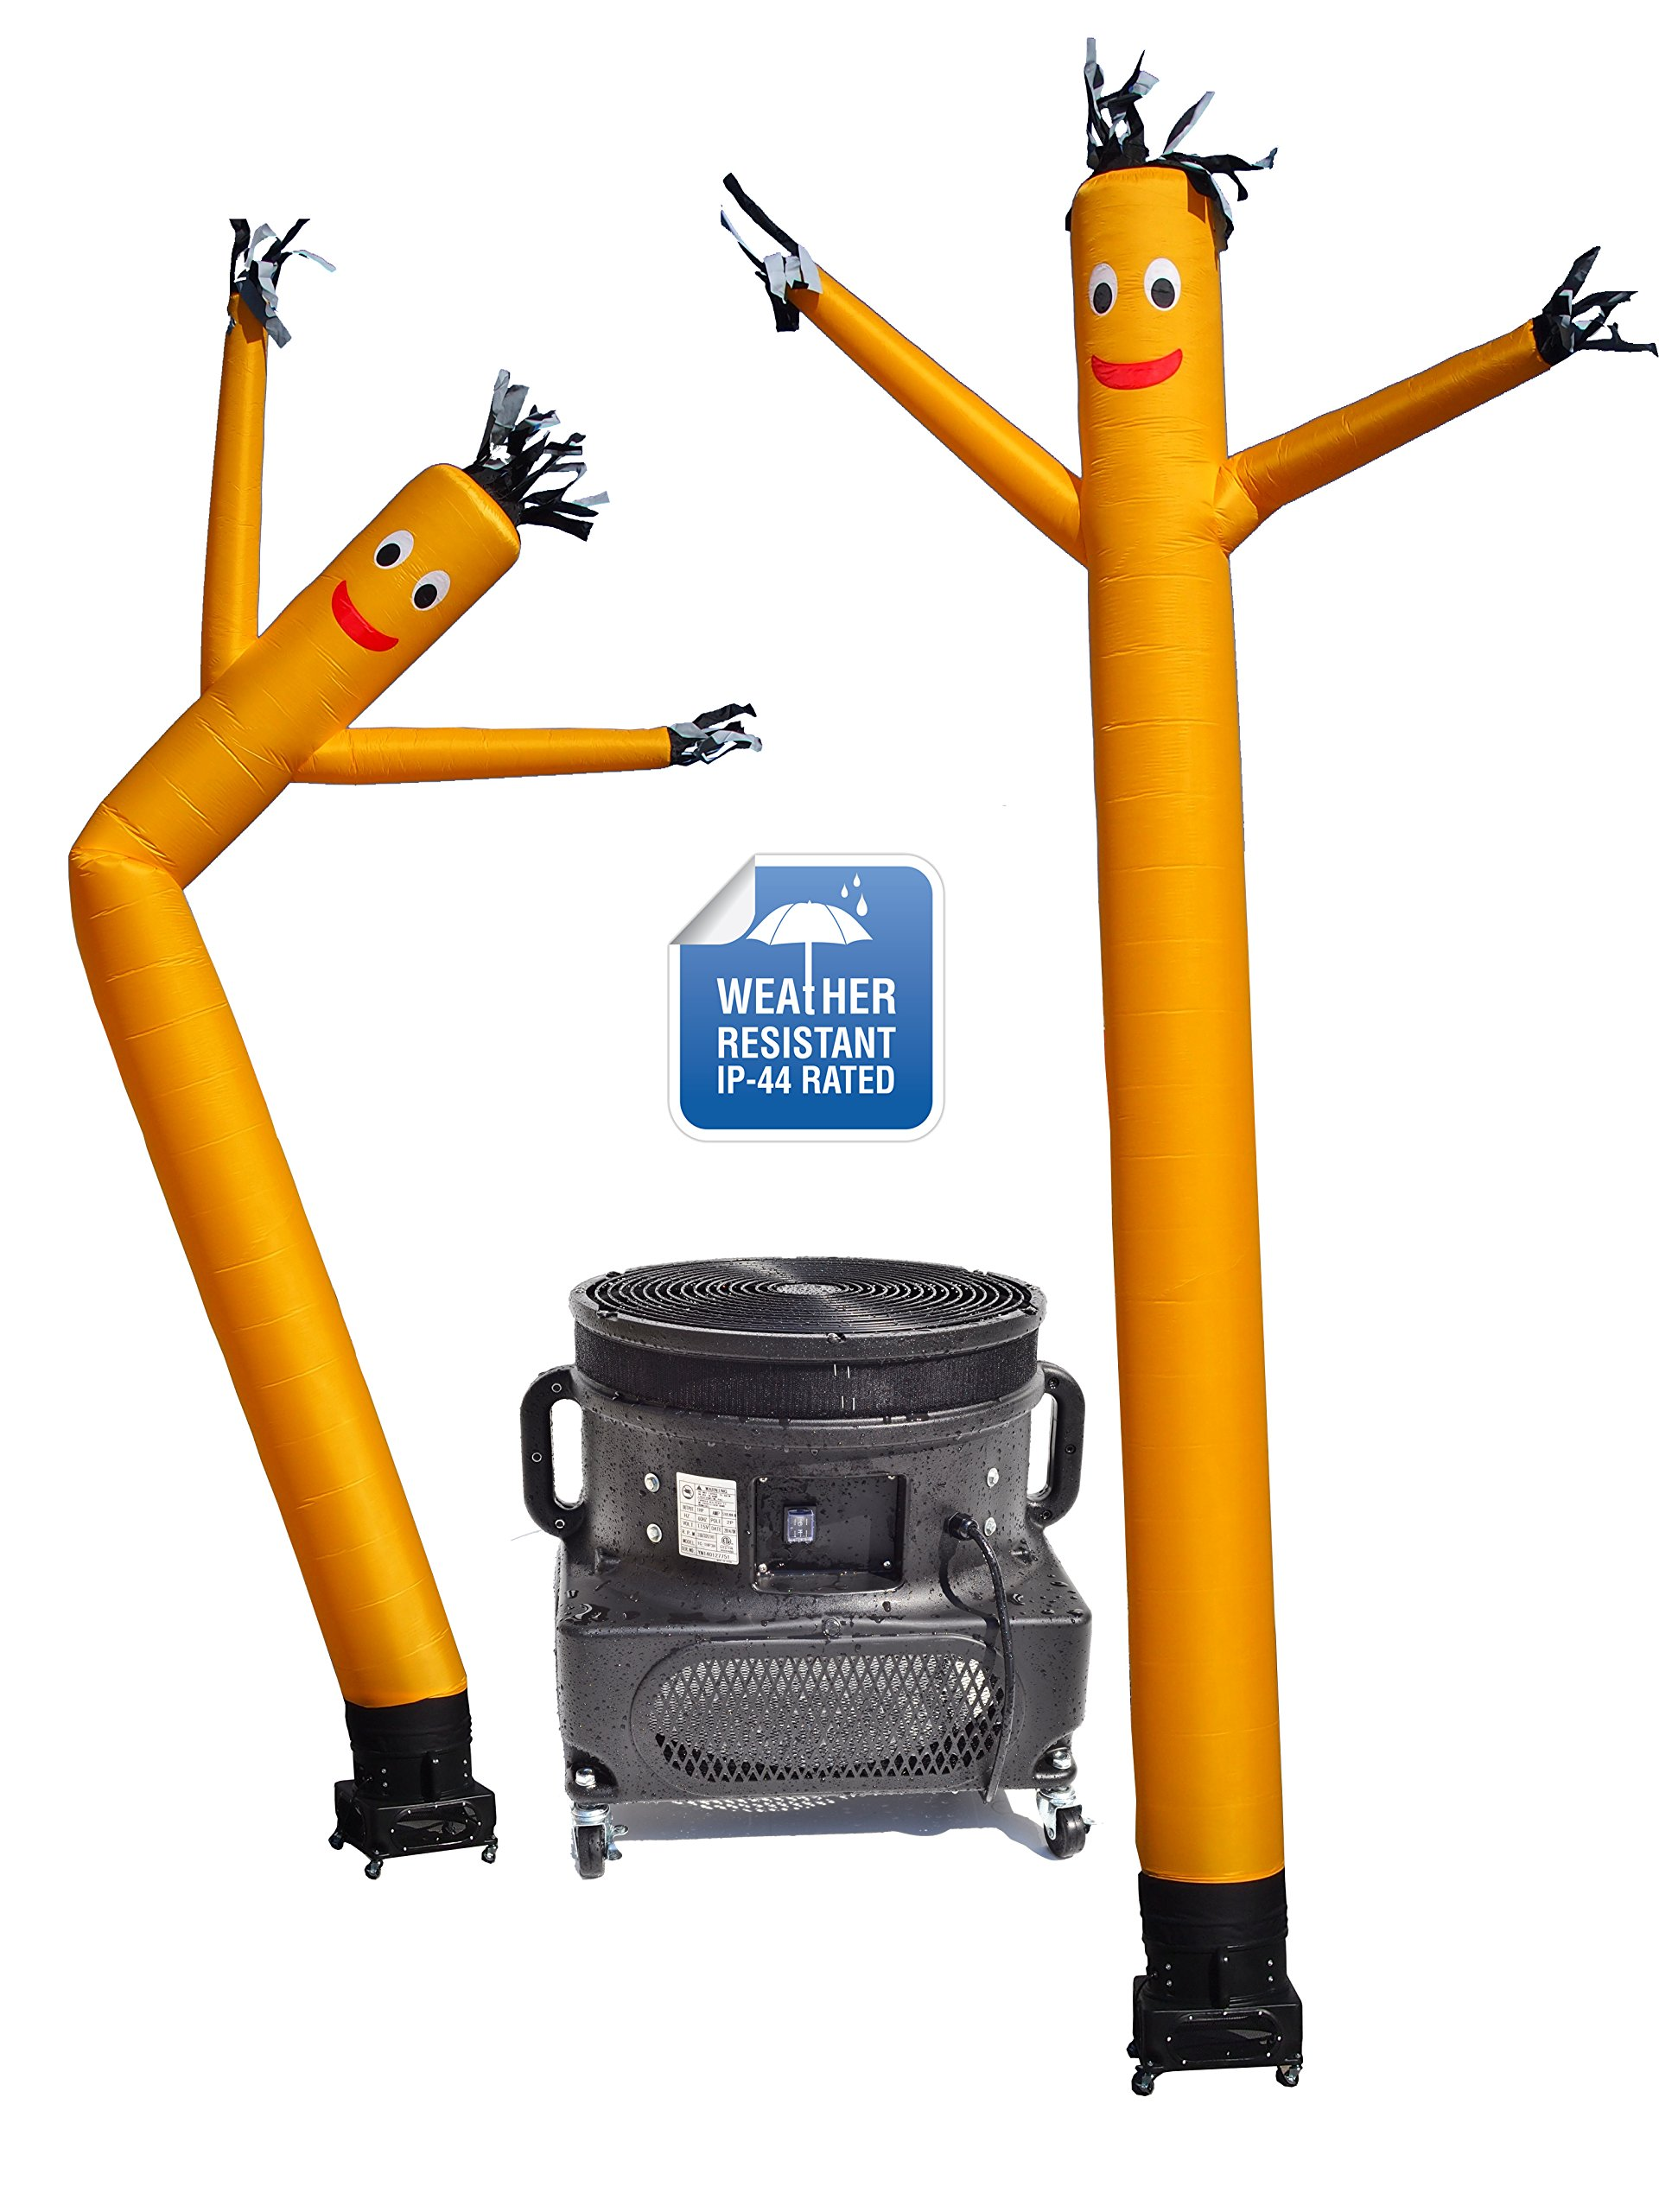 LookOurWay Air Dancers Inflatable Tube Man Complete Set with 1 HP Weather-Resistant Sky Dancer Blower, 20-Feet, Yellow